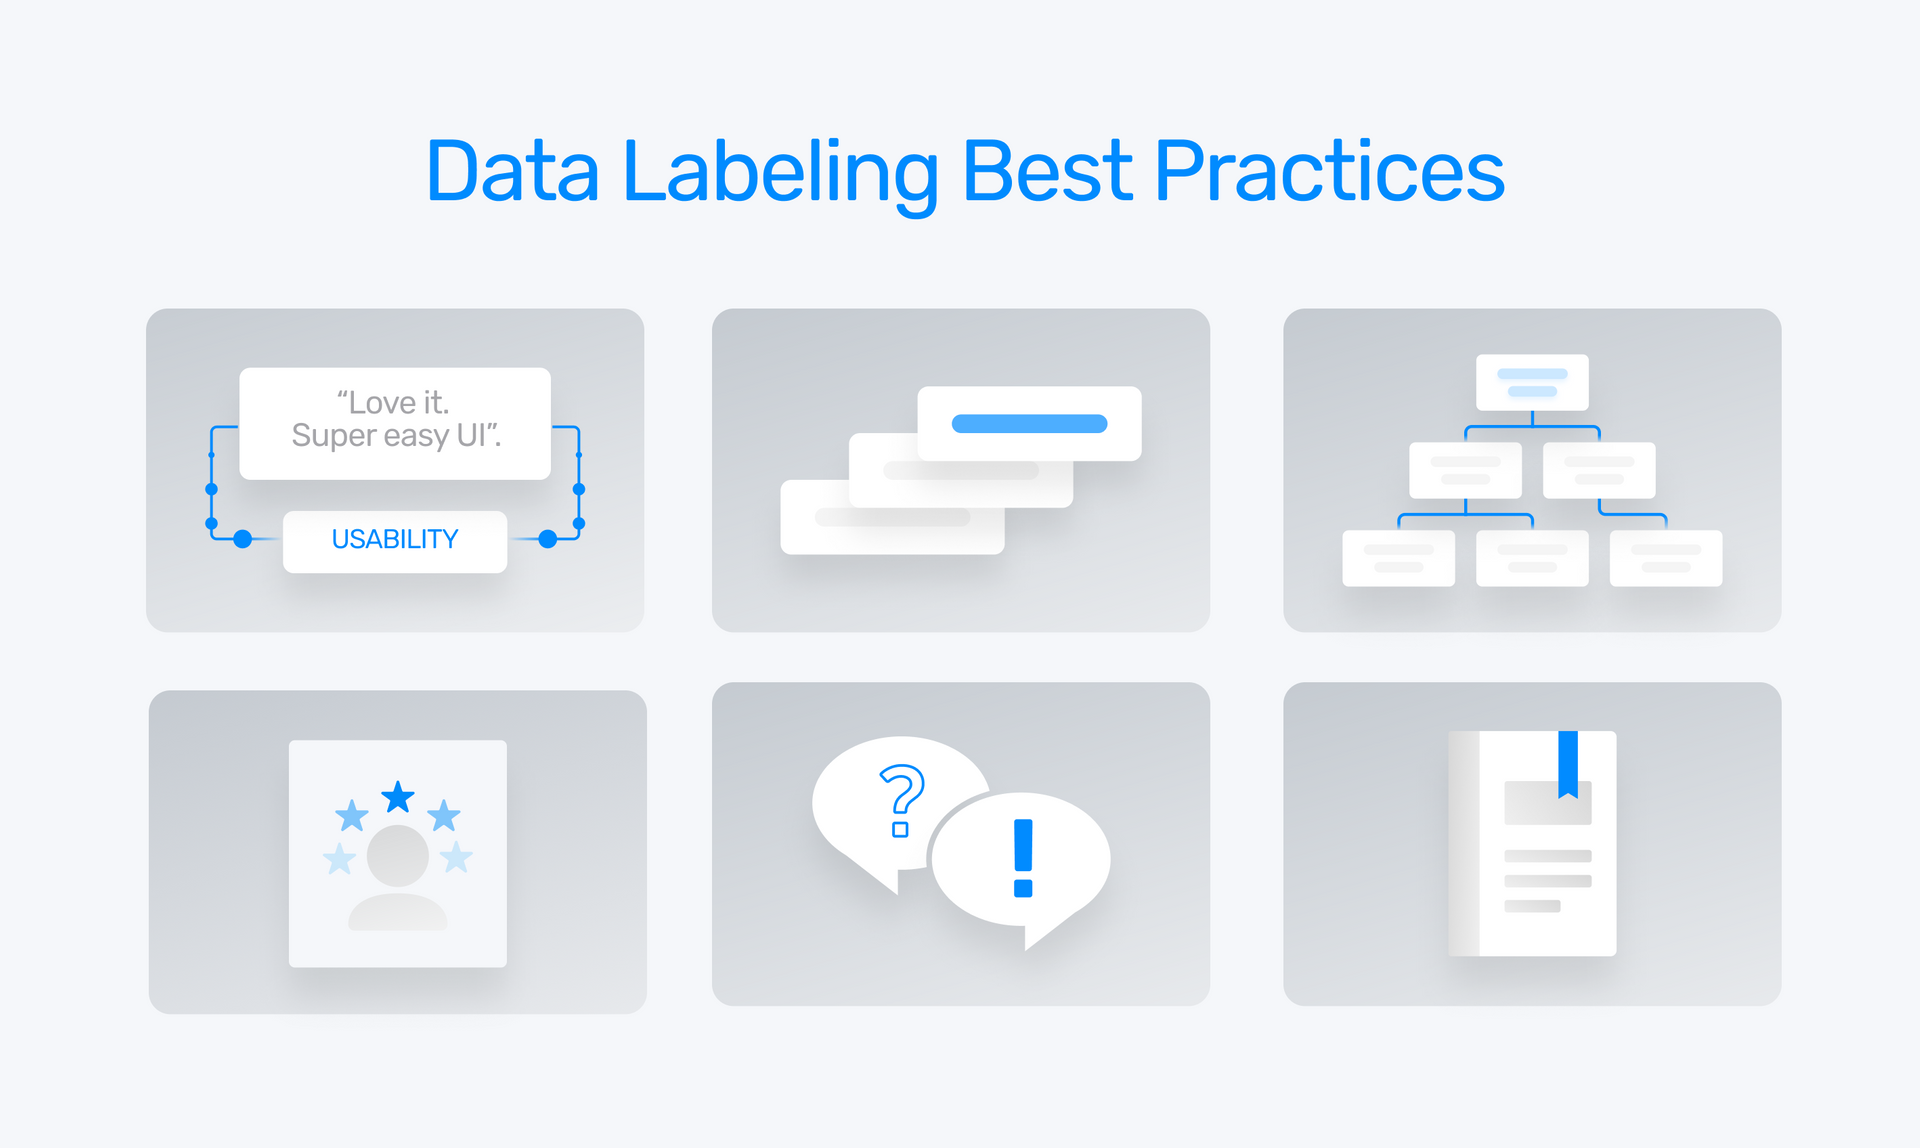 Data labeling best practices